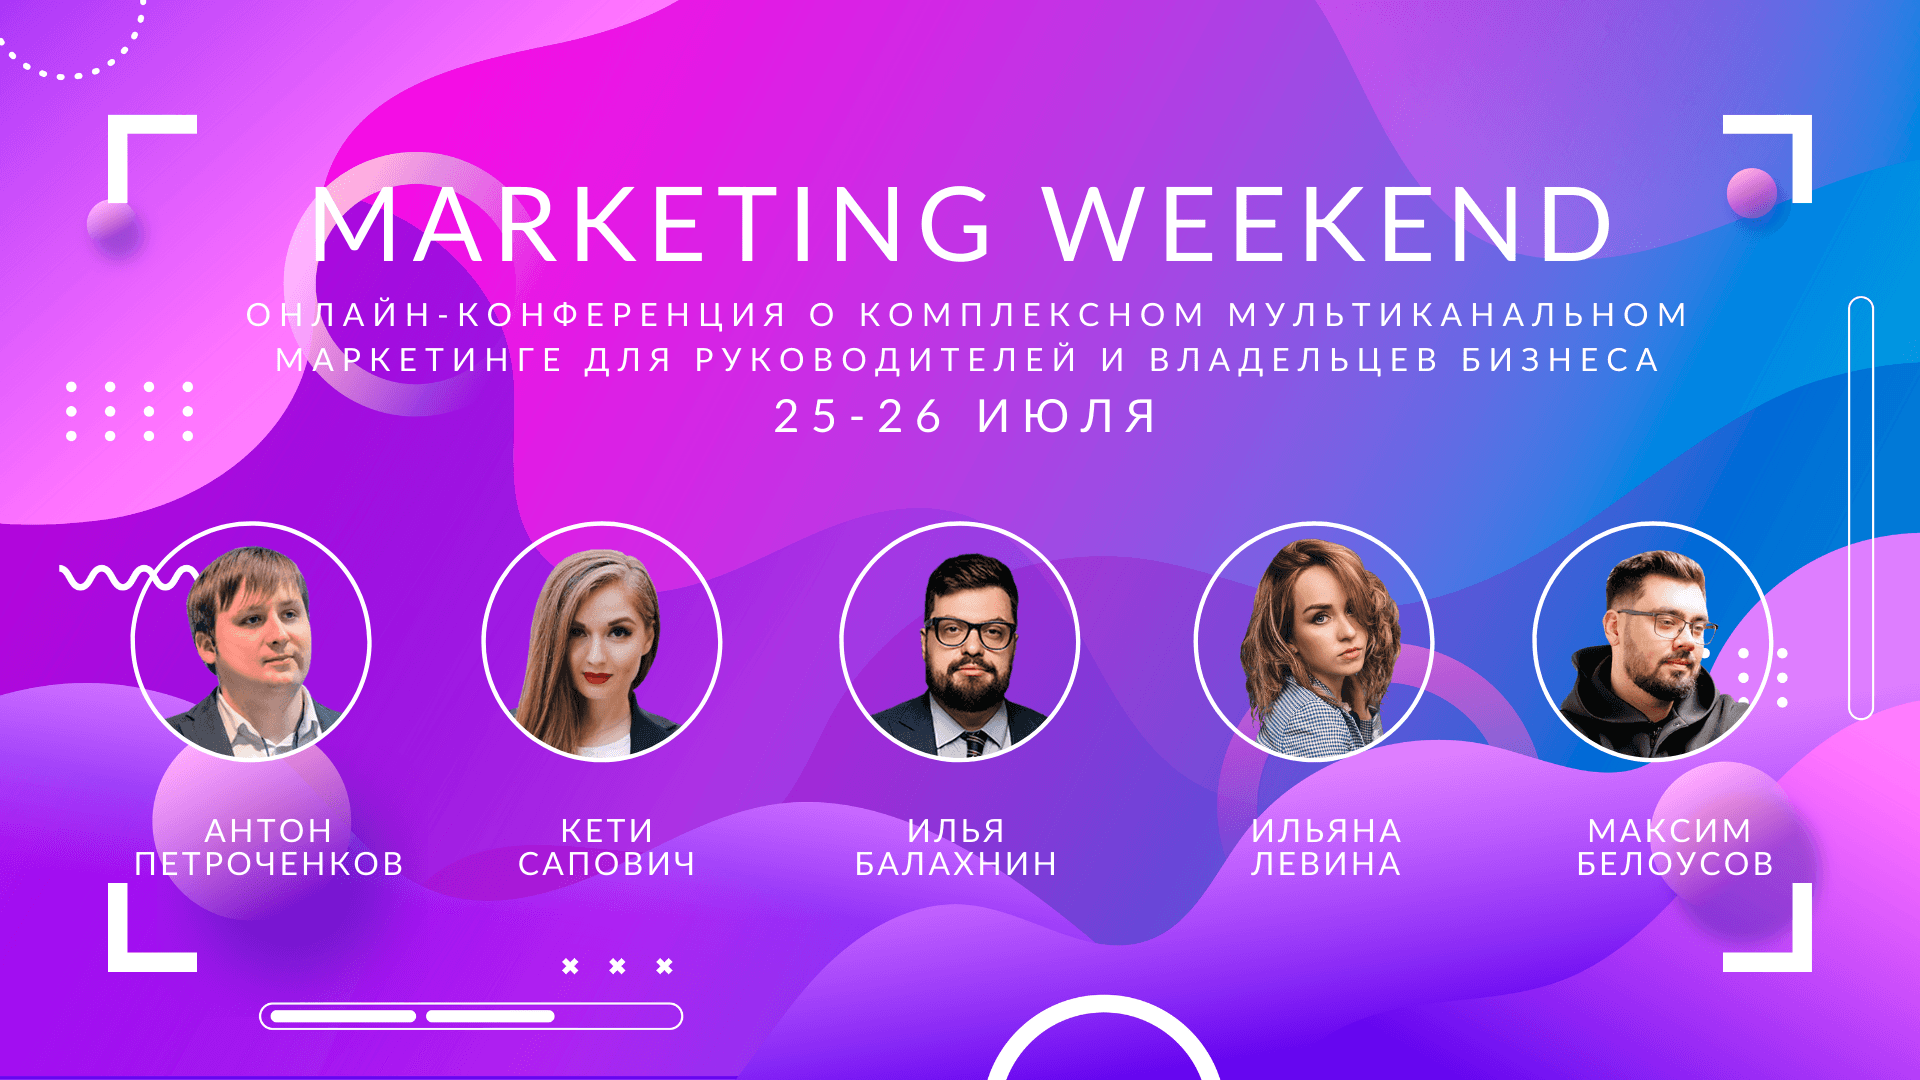 Online conference Marketing Weekend